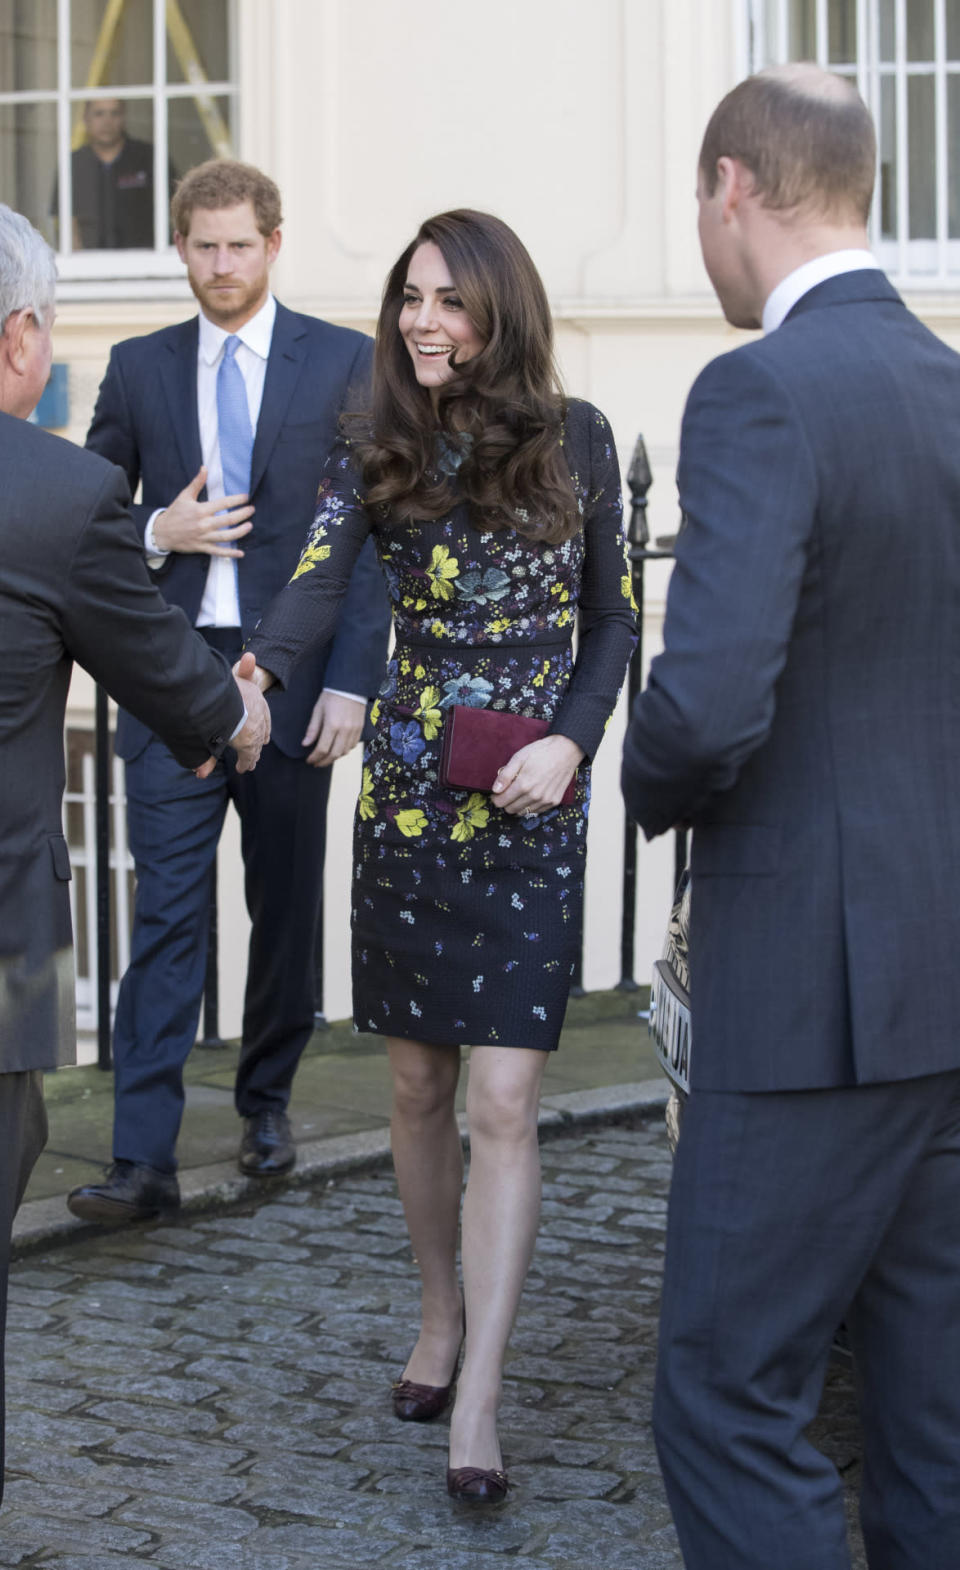 <p>The Duchess appeared perfectly coiffed at the ICA in London, wearing in a dark floral dress by Erdem (costing an eye watering £1050). Appearing in front of the media along with Princes William and Harry to outline her 2017 goals for Heads Together, Kate accessorised with brown buckled pumps and a burgundy suede clutch. </p><p><i>[Photo: Getty]</i></p>